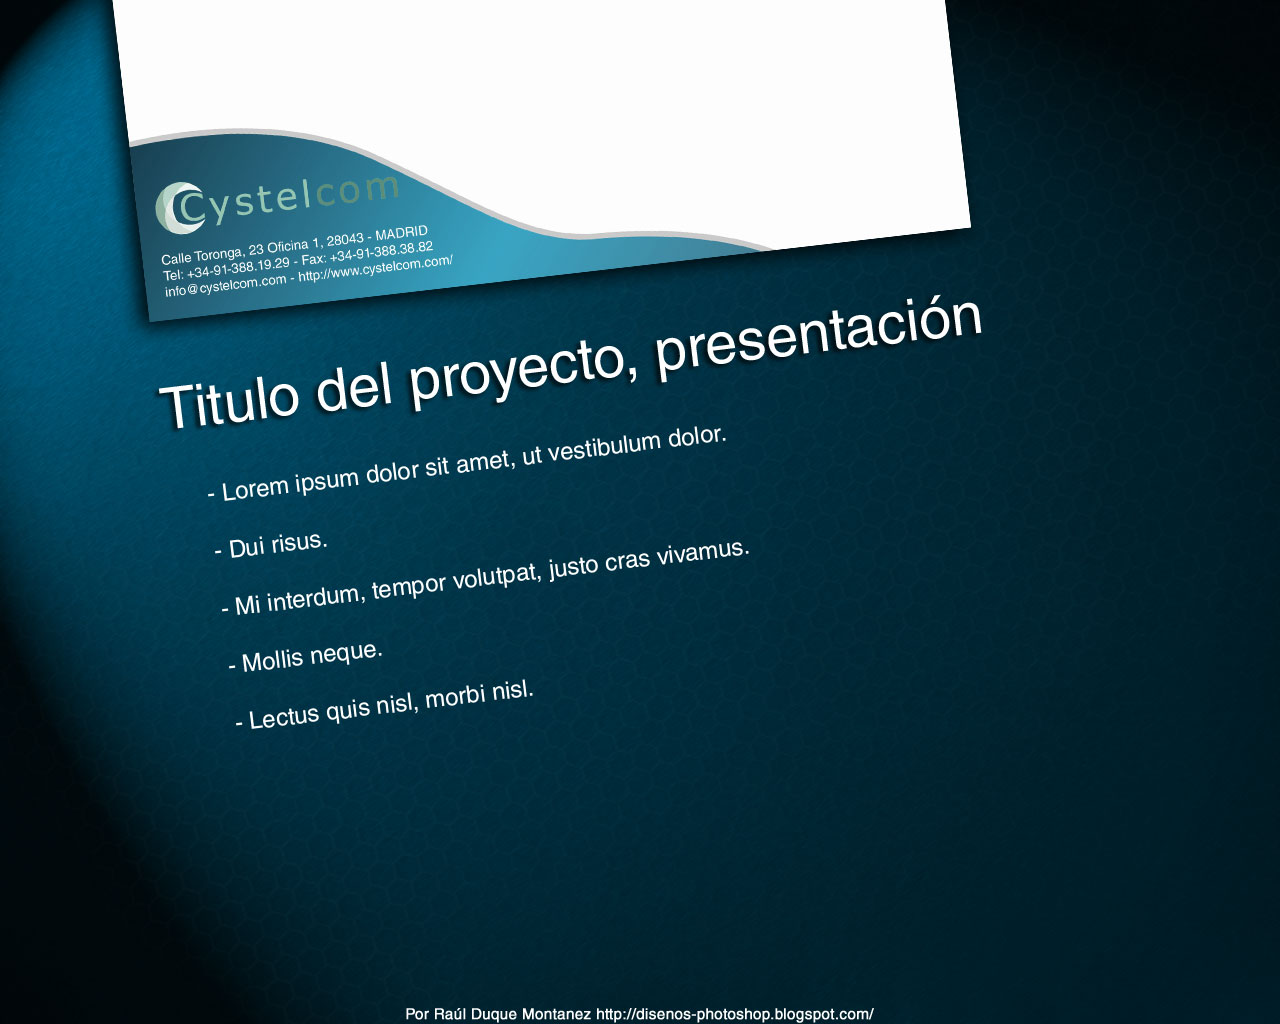 descargar plantillas animadas para power point 2010 gratis